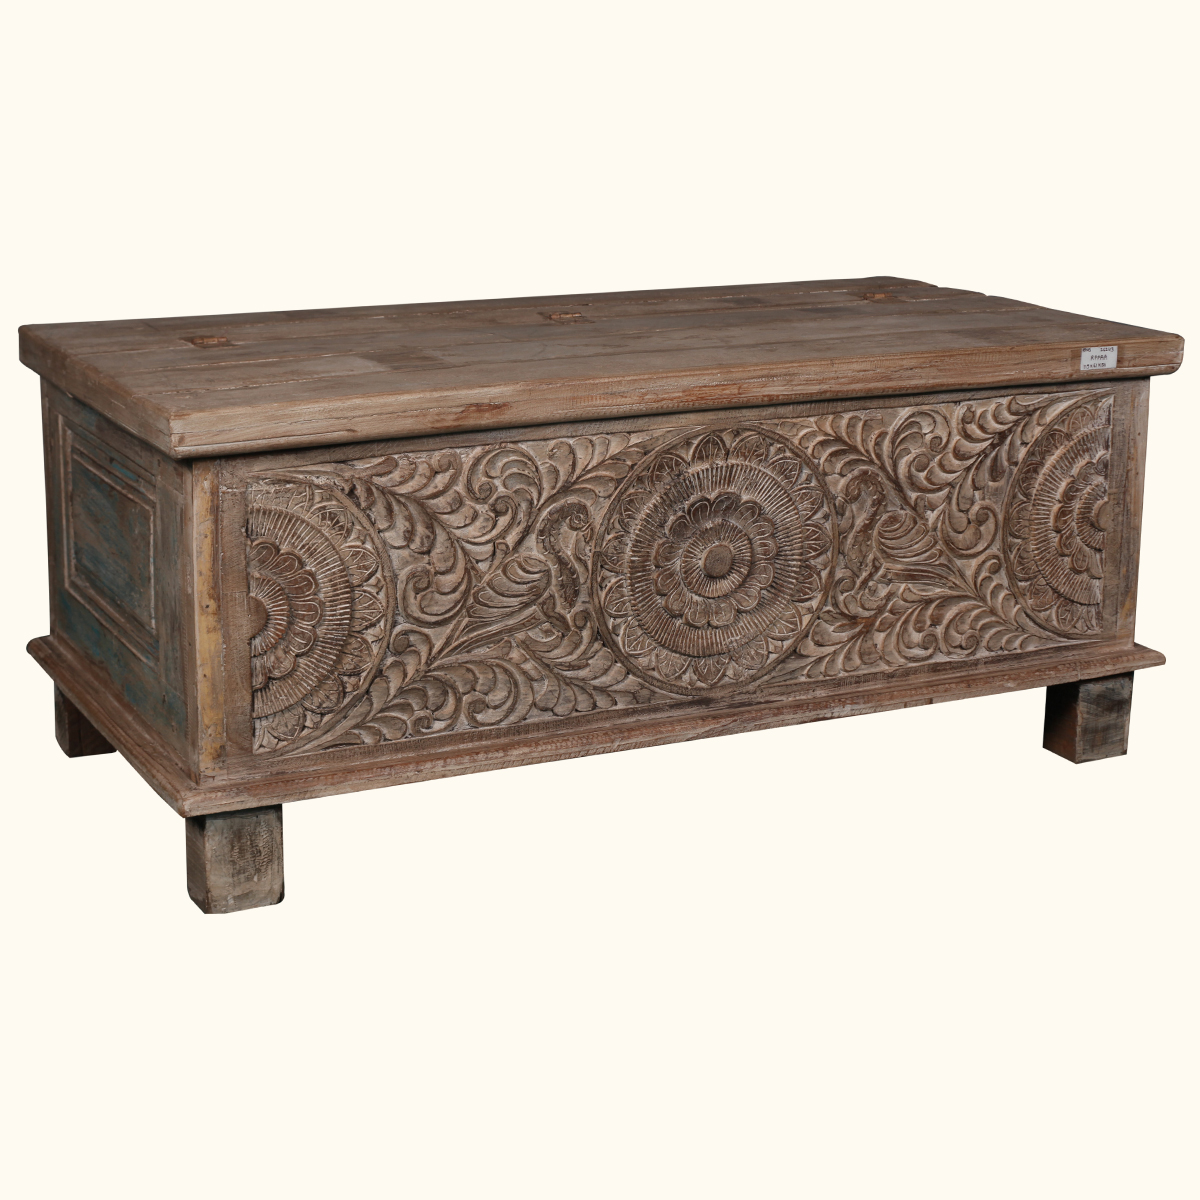 Rustic hand carved reclaimed wood coffee table trunk storage hope chest box ebay Coffee table chest with storage